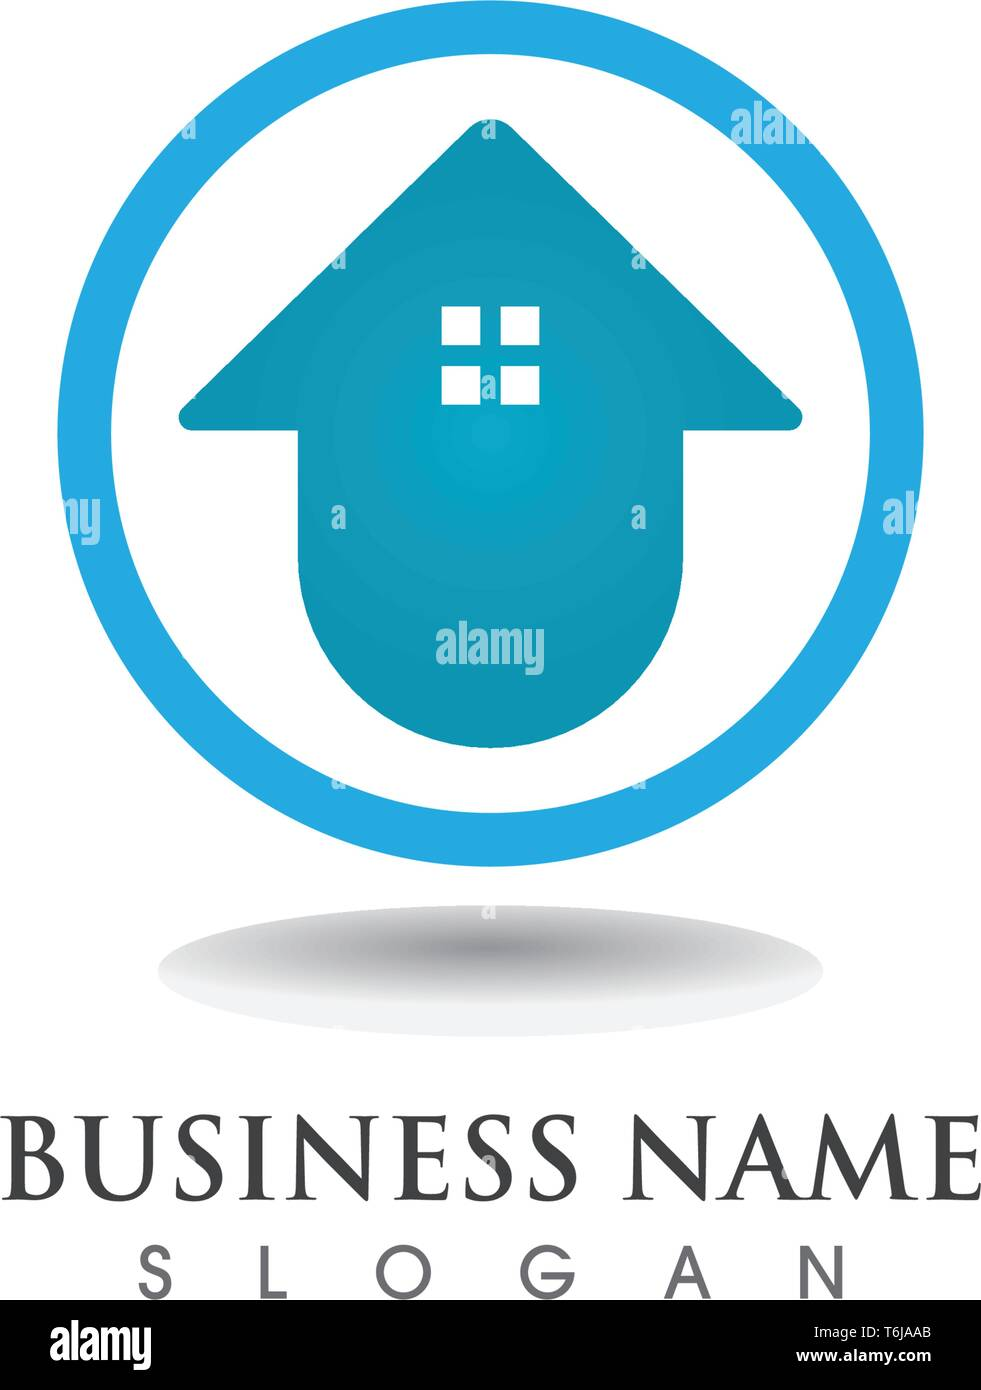 Home sweet home logo and symbol vector - Stock Vector